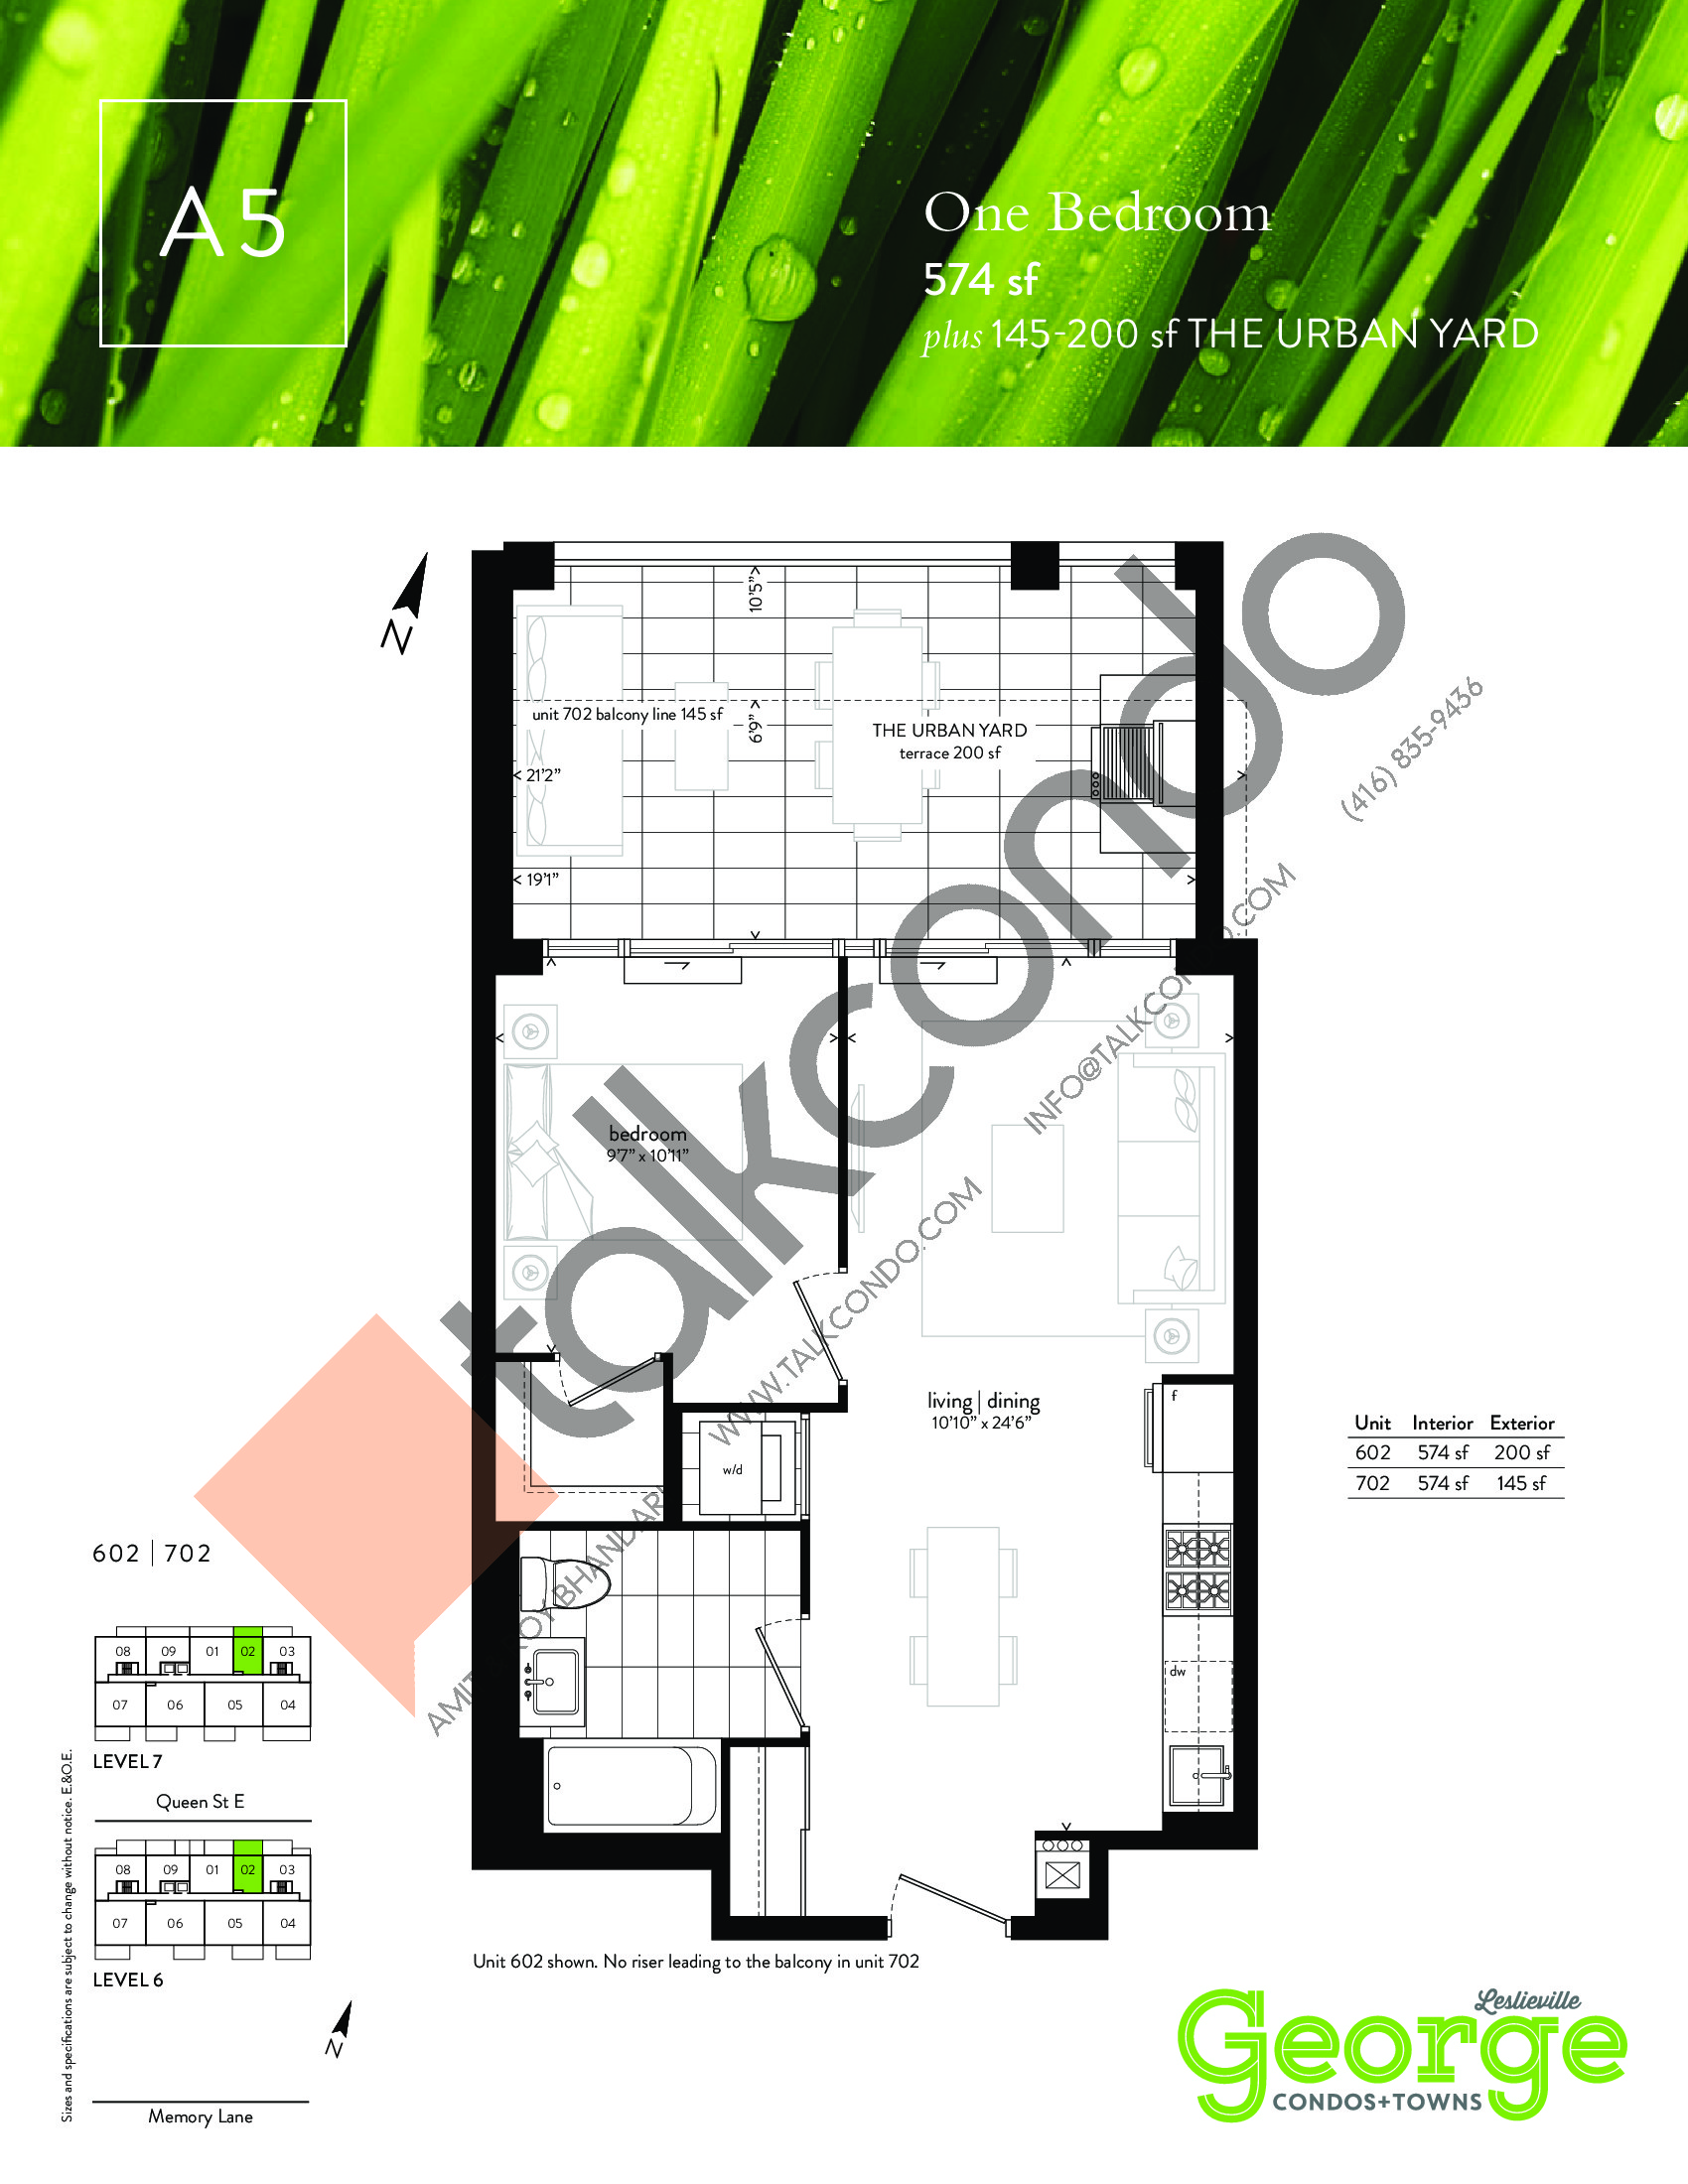 A5 Floor Plan at George Condos & Towns - 574 sq.ft